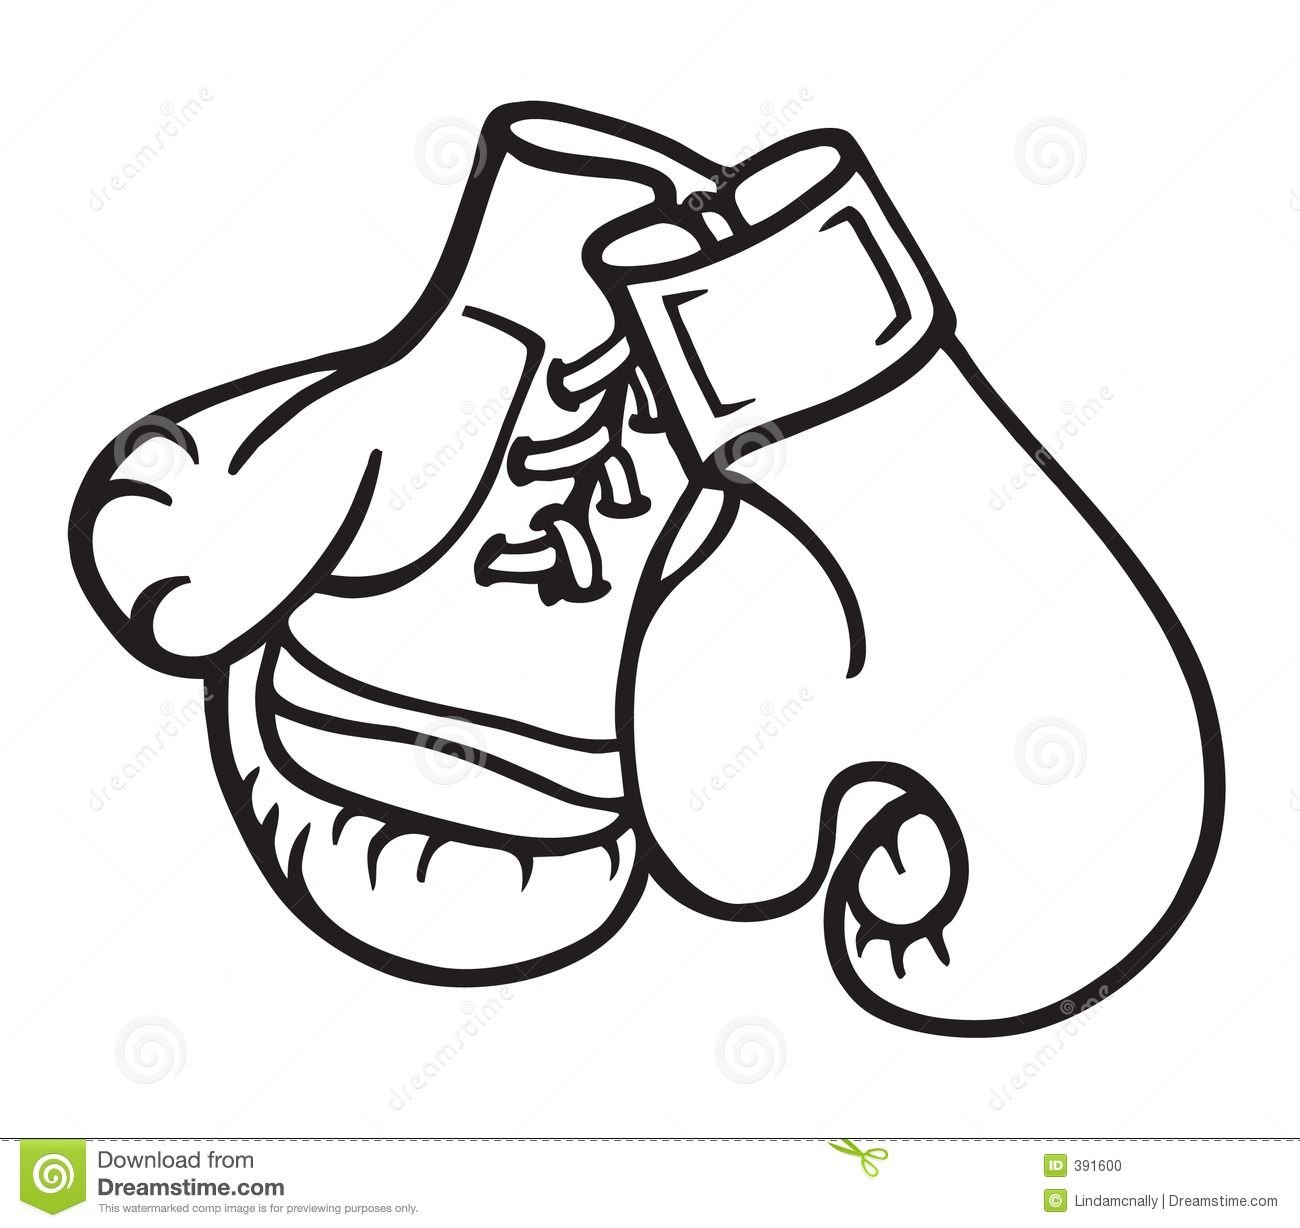 16+ Boxing gloves clipart black and white ideas in 2021